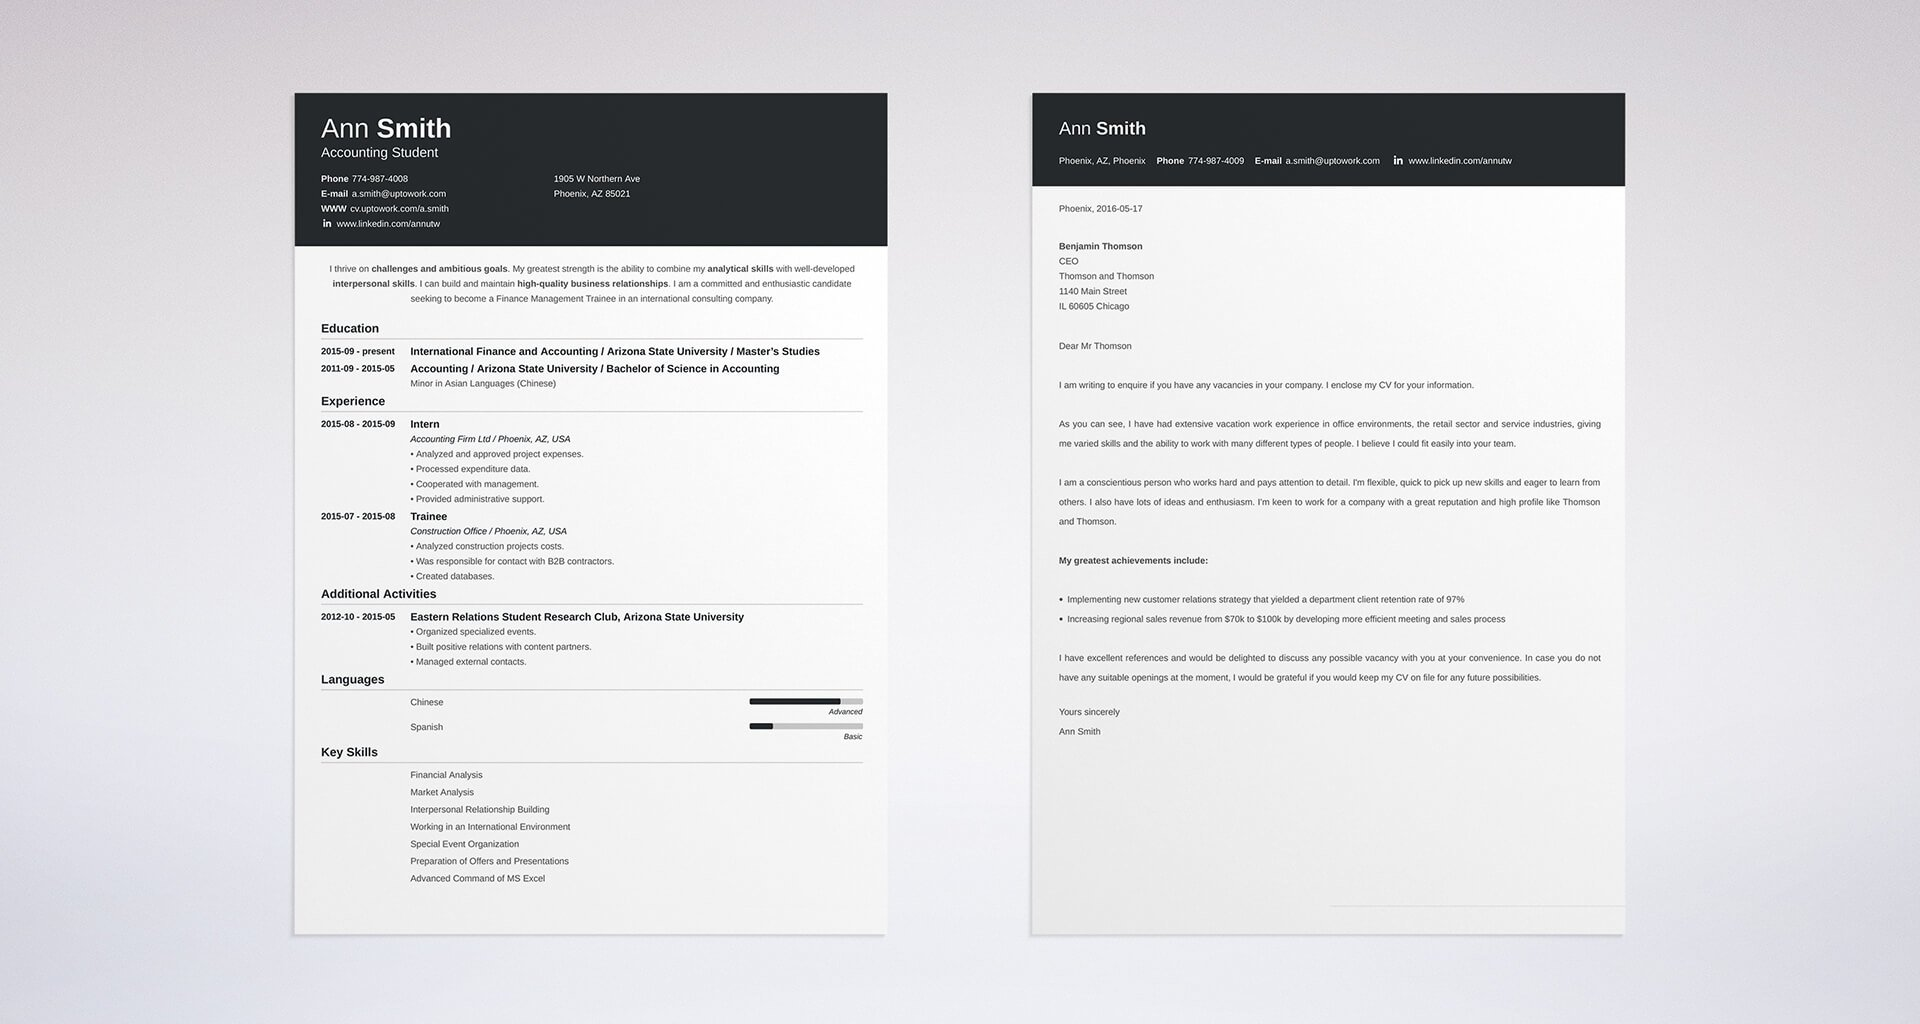 Need To Make A Resume 28.06.2017